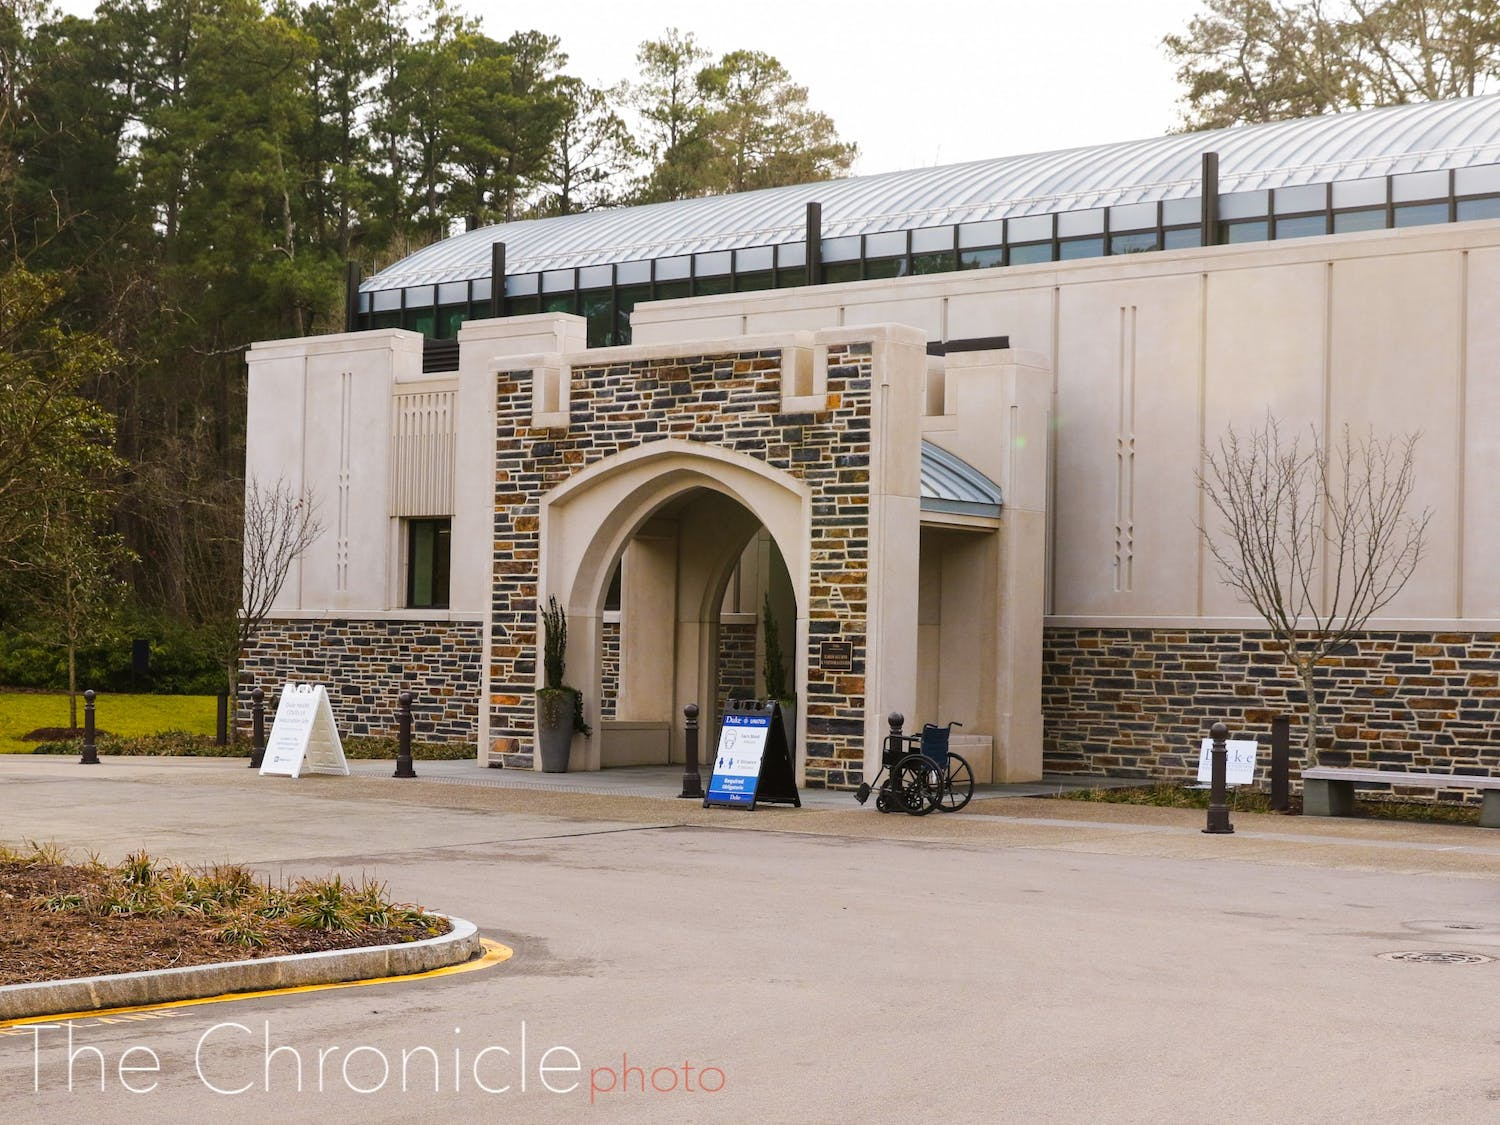 The Karsh Alumni and Visitors Center, opened in 2019 as a gathering spot for prospective students and visiting alumni, has become a polling place and then a COVID-19 vaccination site.